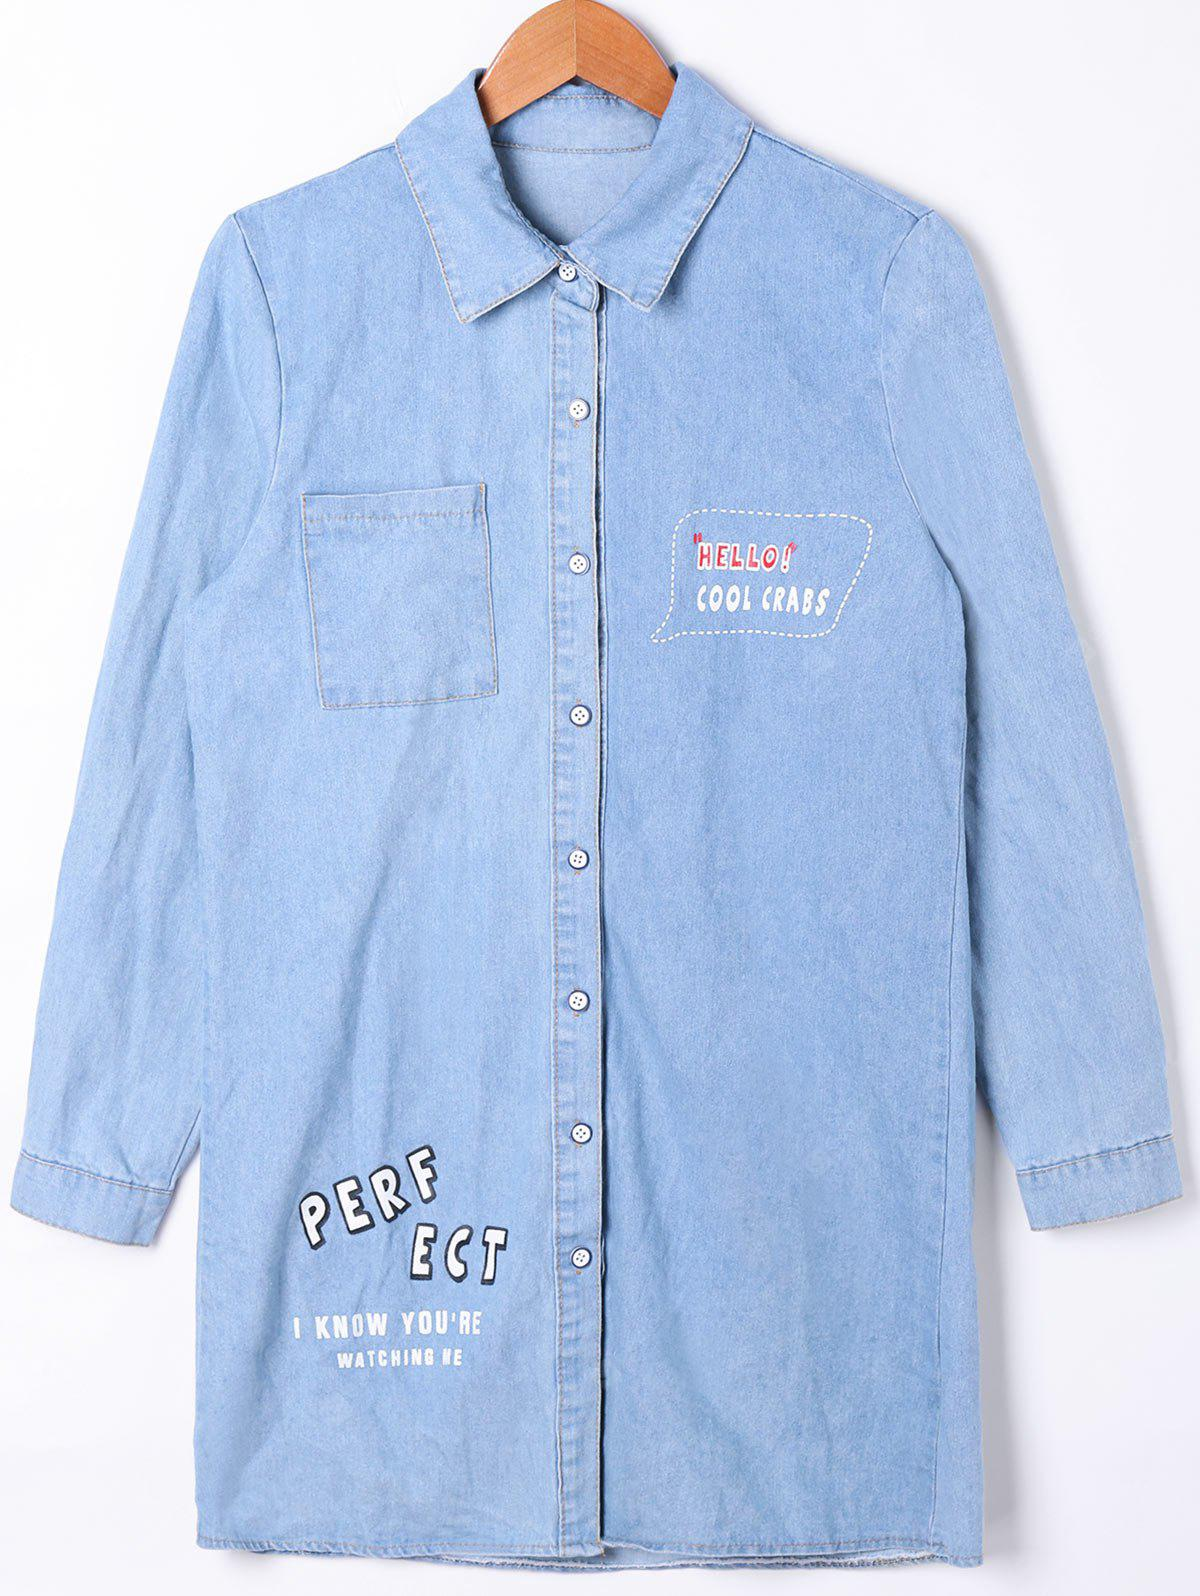 LIGHT BLUE L Patch Pocket Button Up Denim Shirt Coat